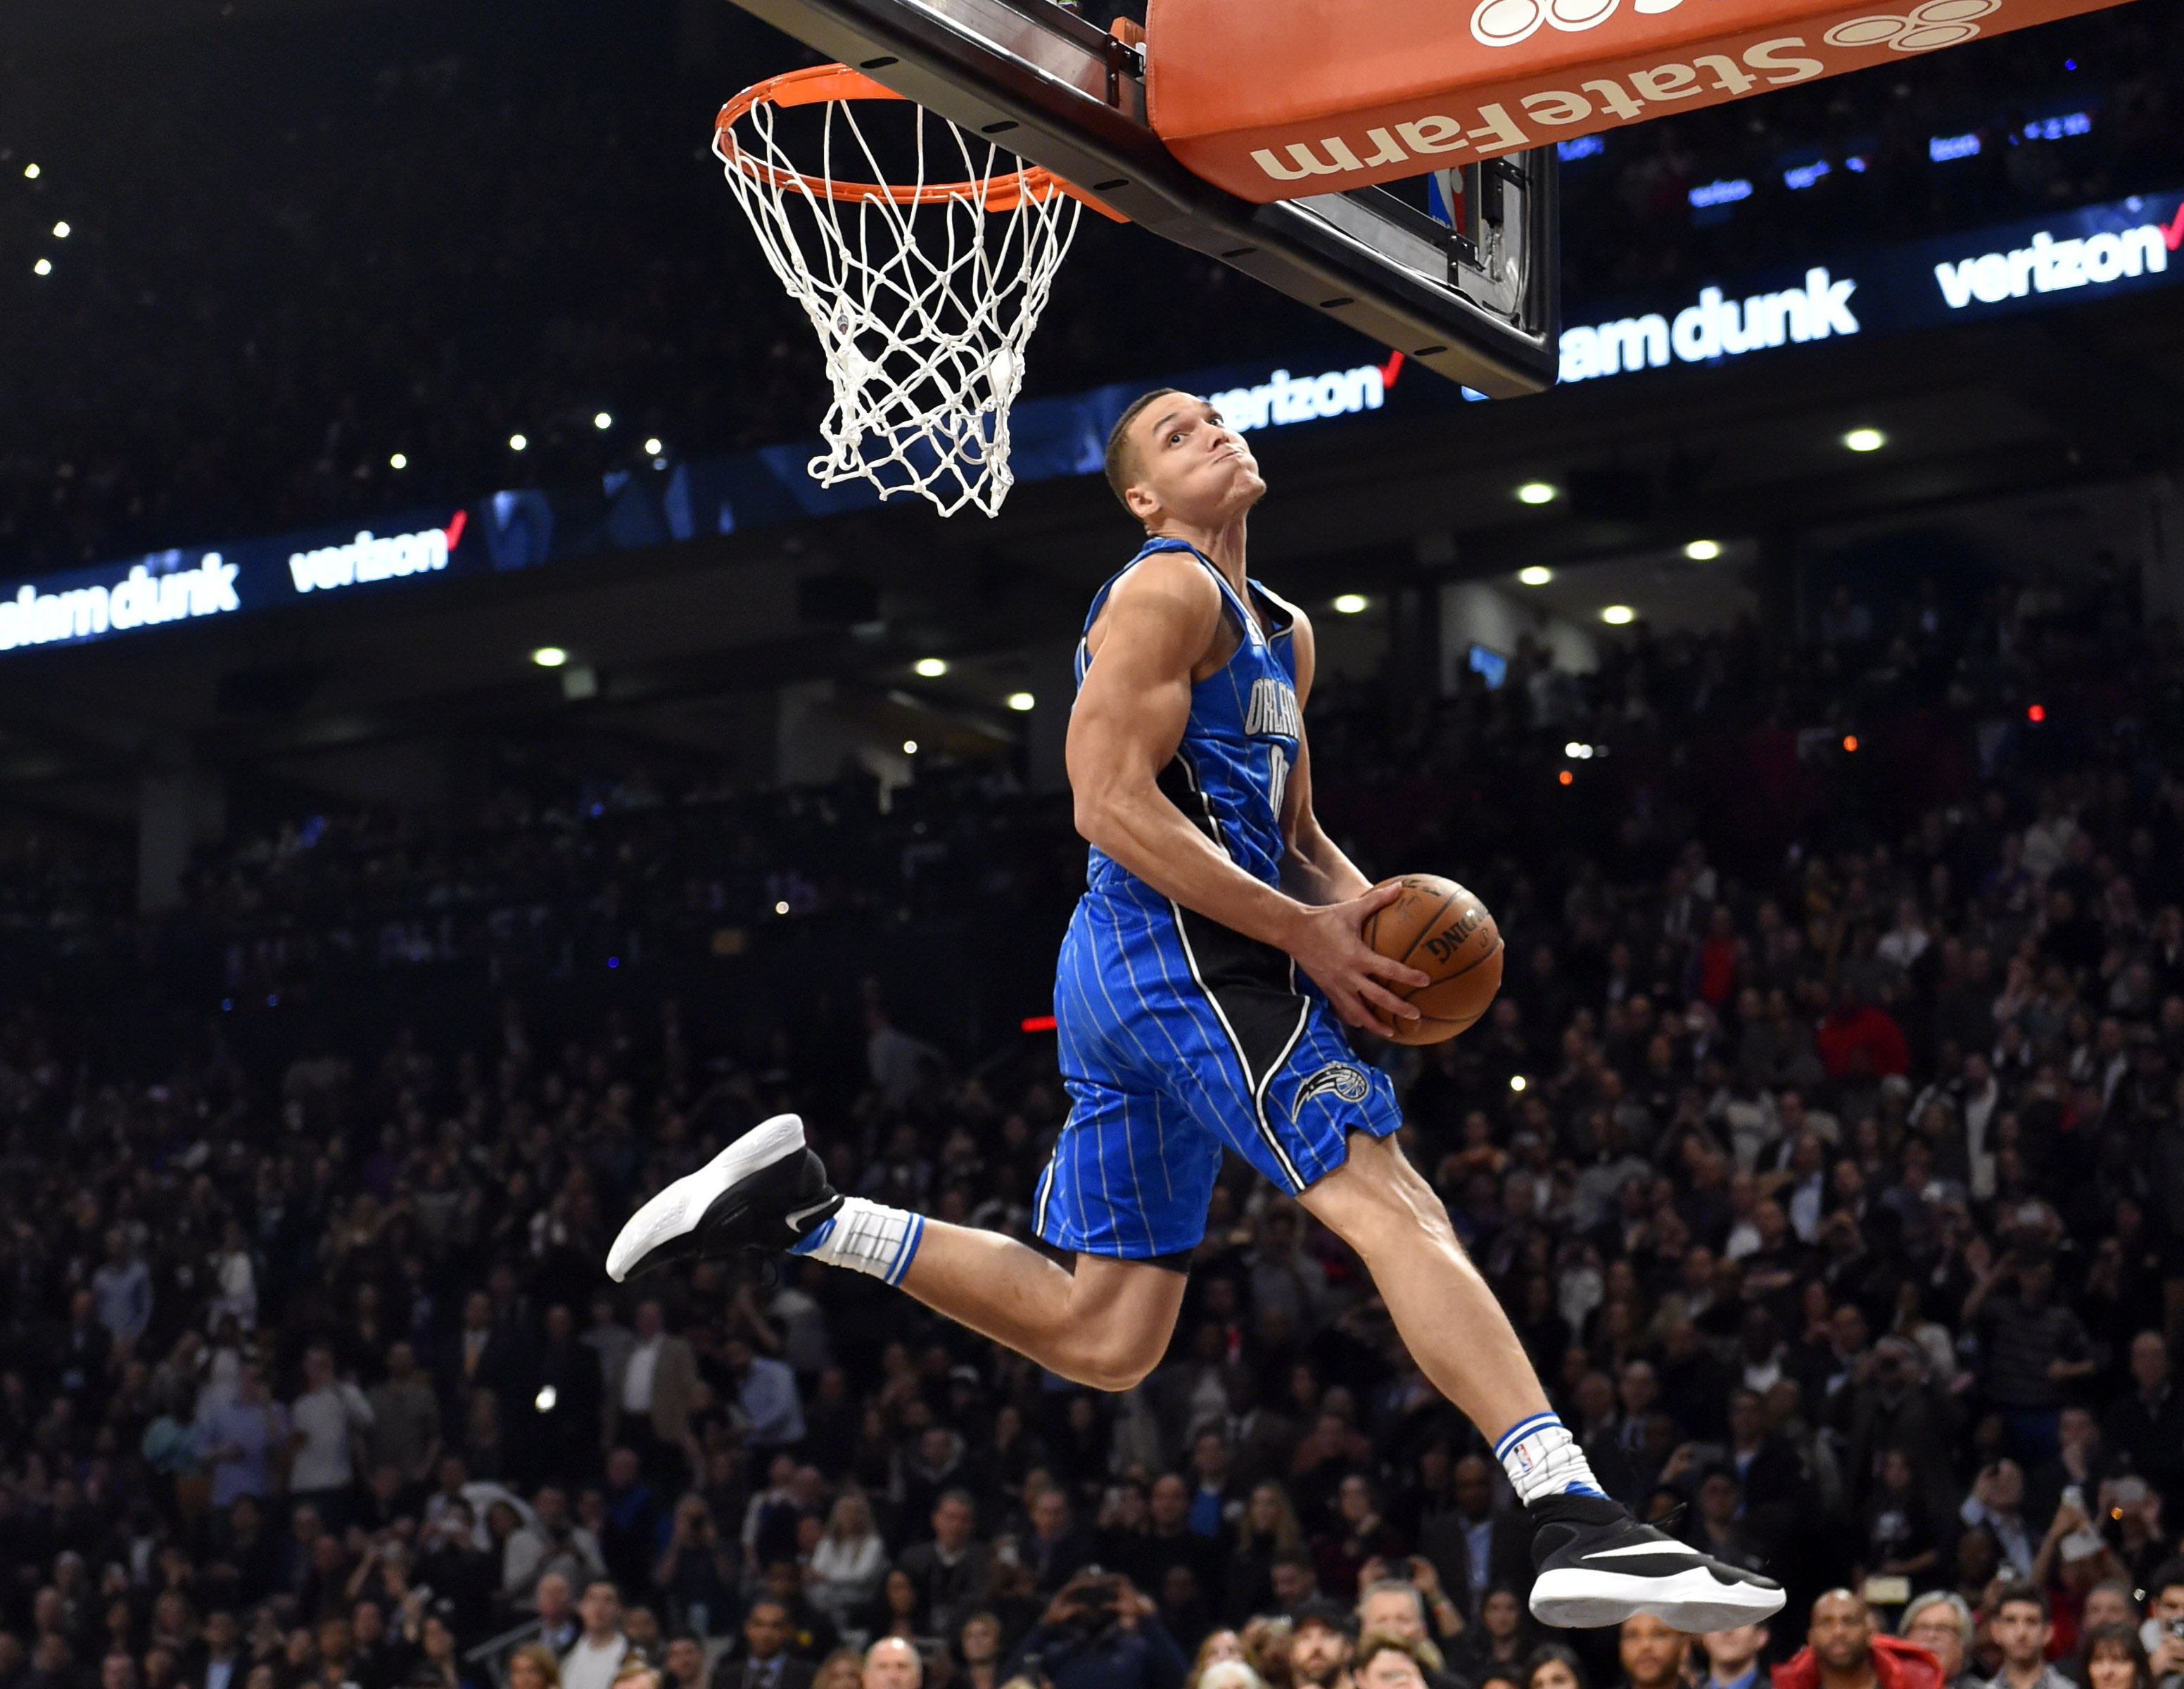 NBA All Star Saturday Night 2017 Live Stream How To Watch